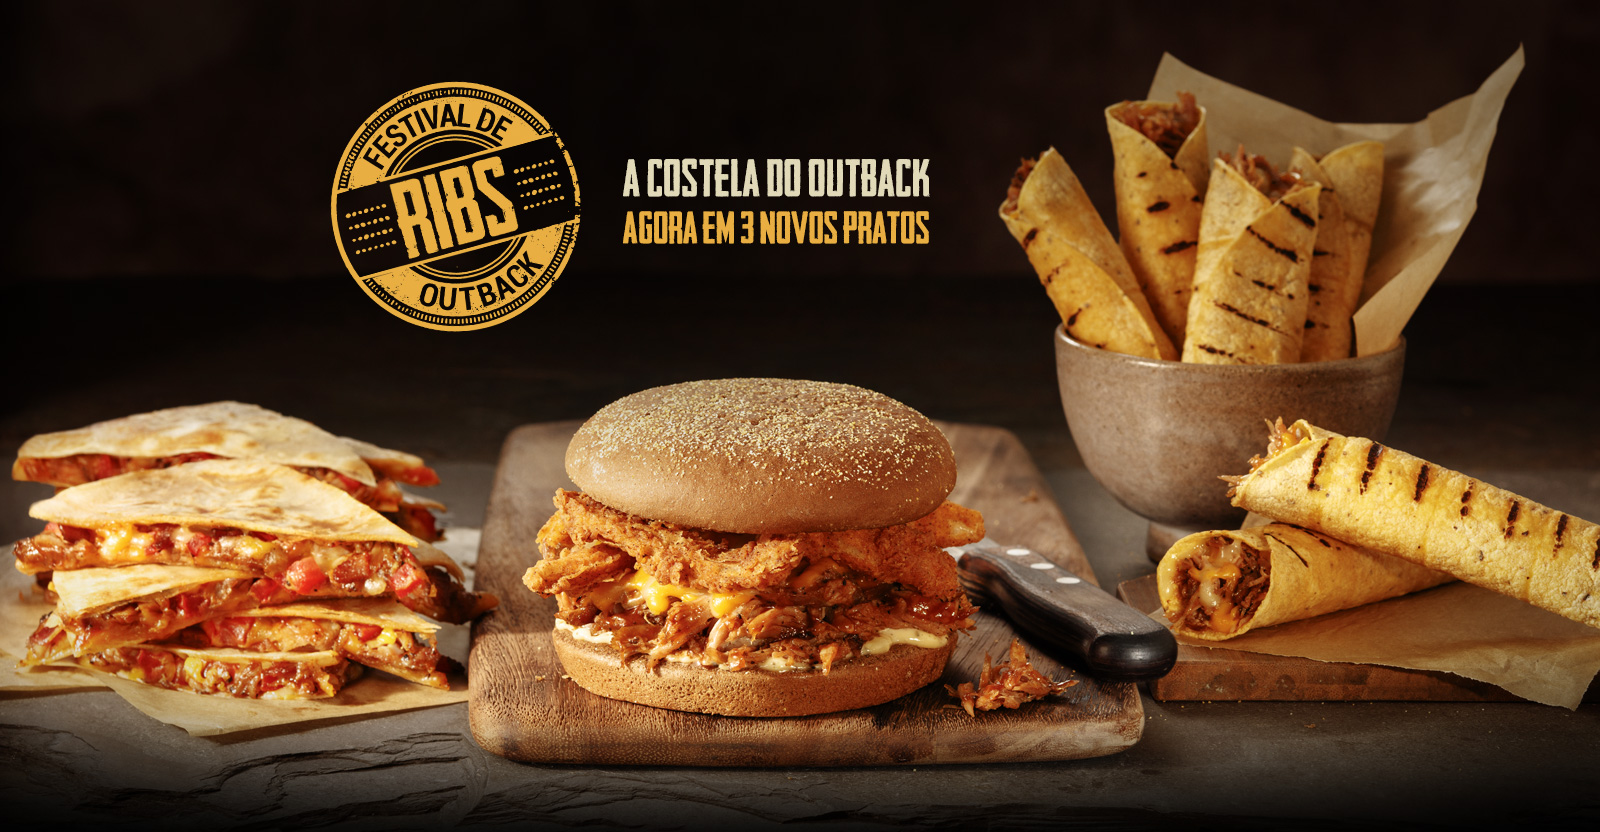 Festival de Costelas do Outback